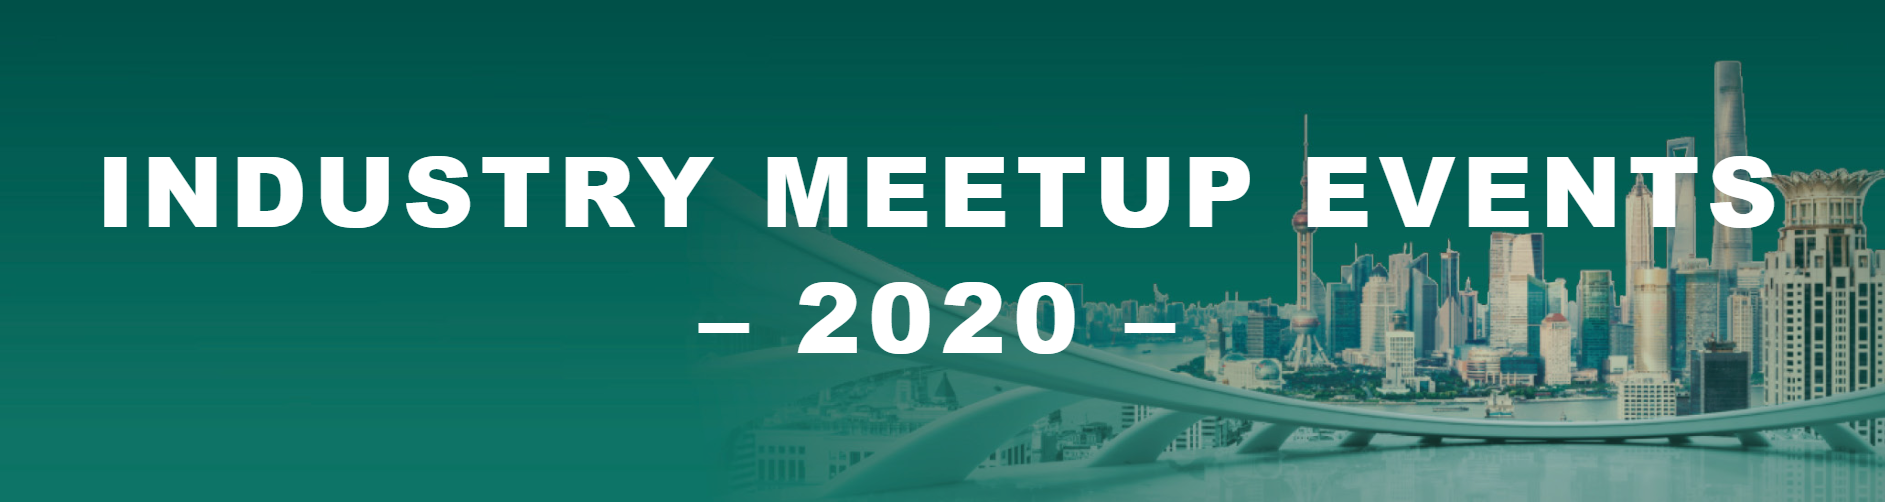 ETC to co-host ITB China Industry MeetUp 2020 events